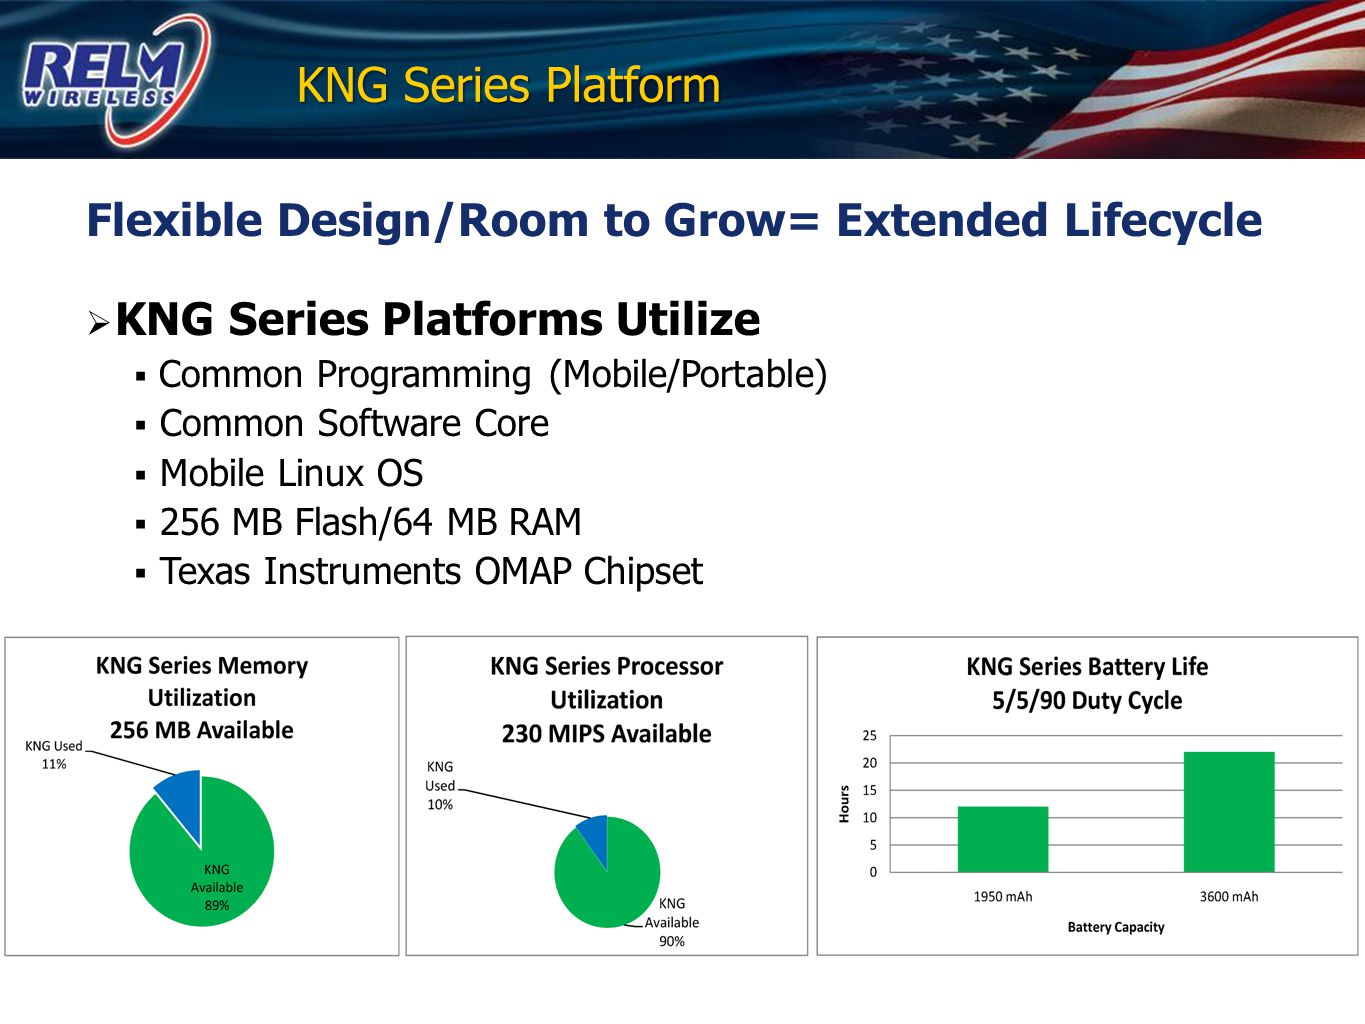 KNG Series Platform Flexible Design/Room to Grow= Extended Lifecycle